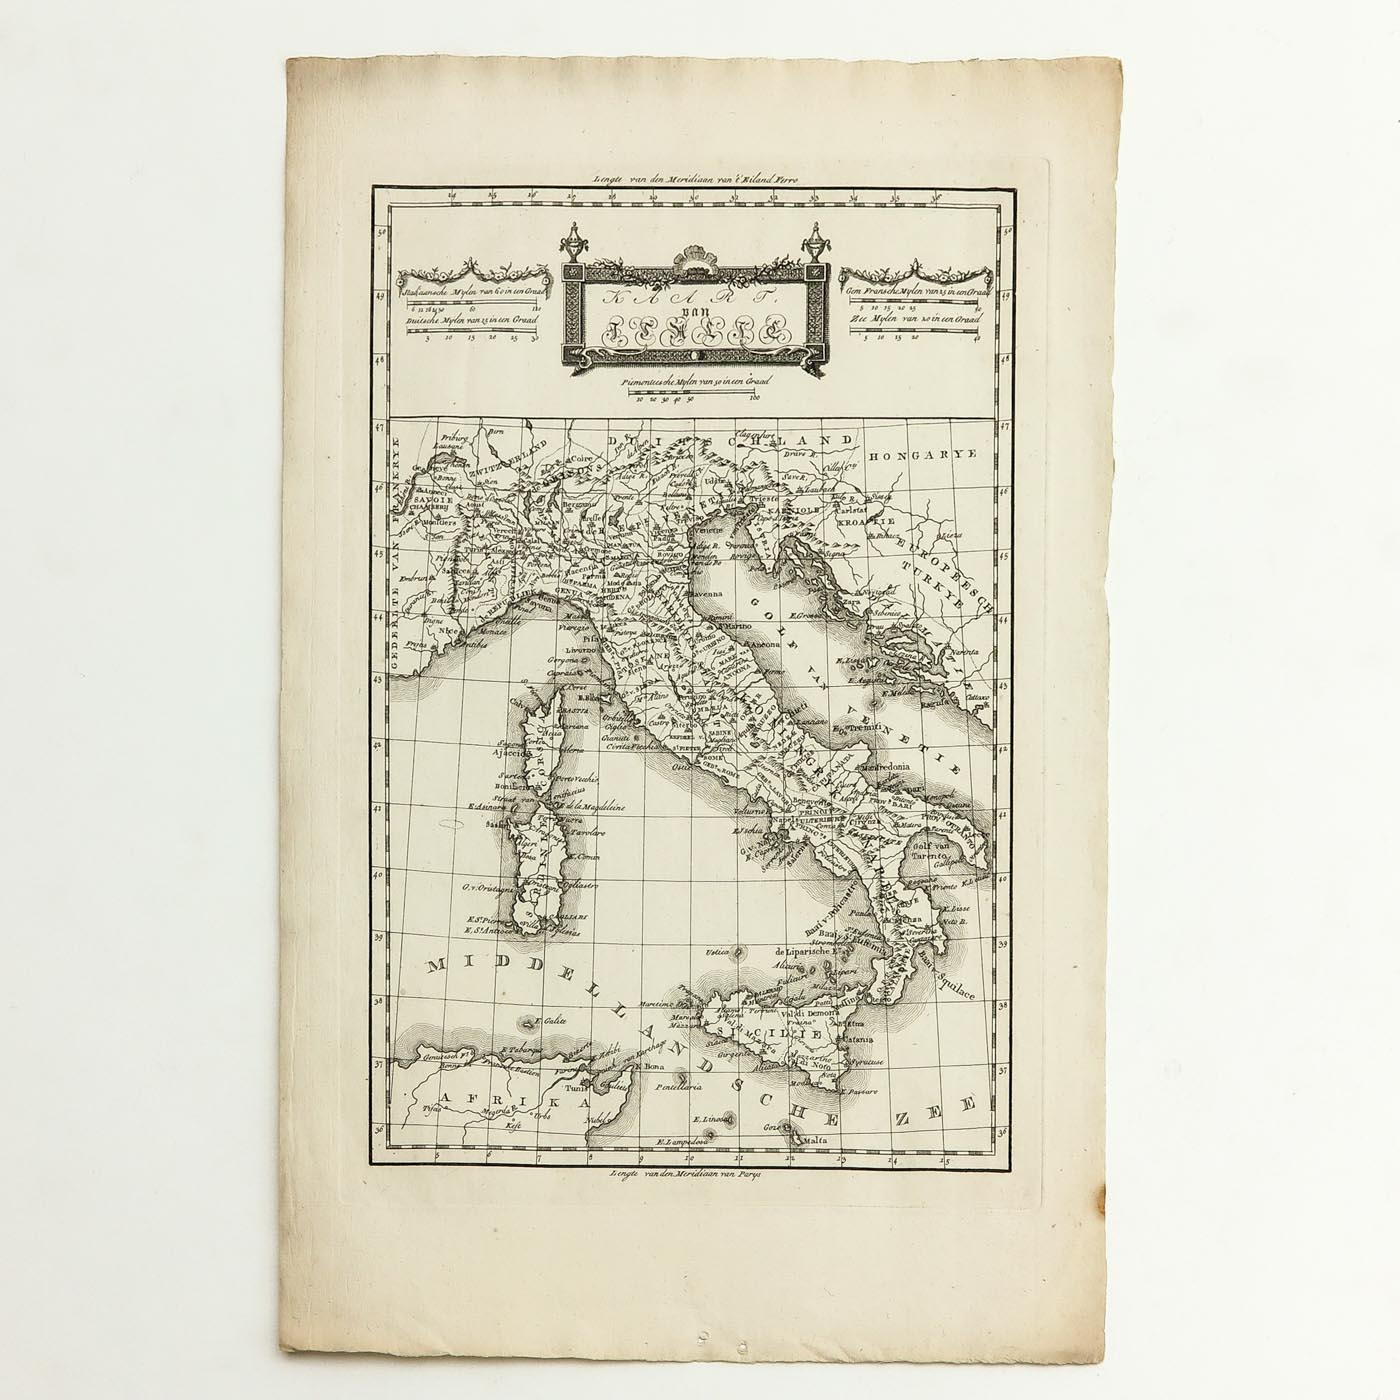 A Collection of Old Prints and Topographic Maps - Image 5 of 5